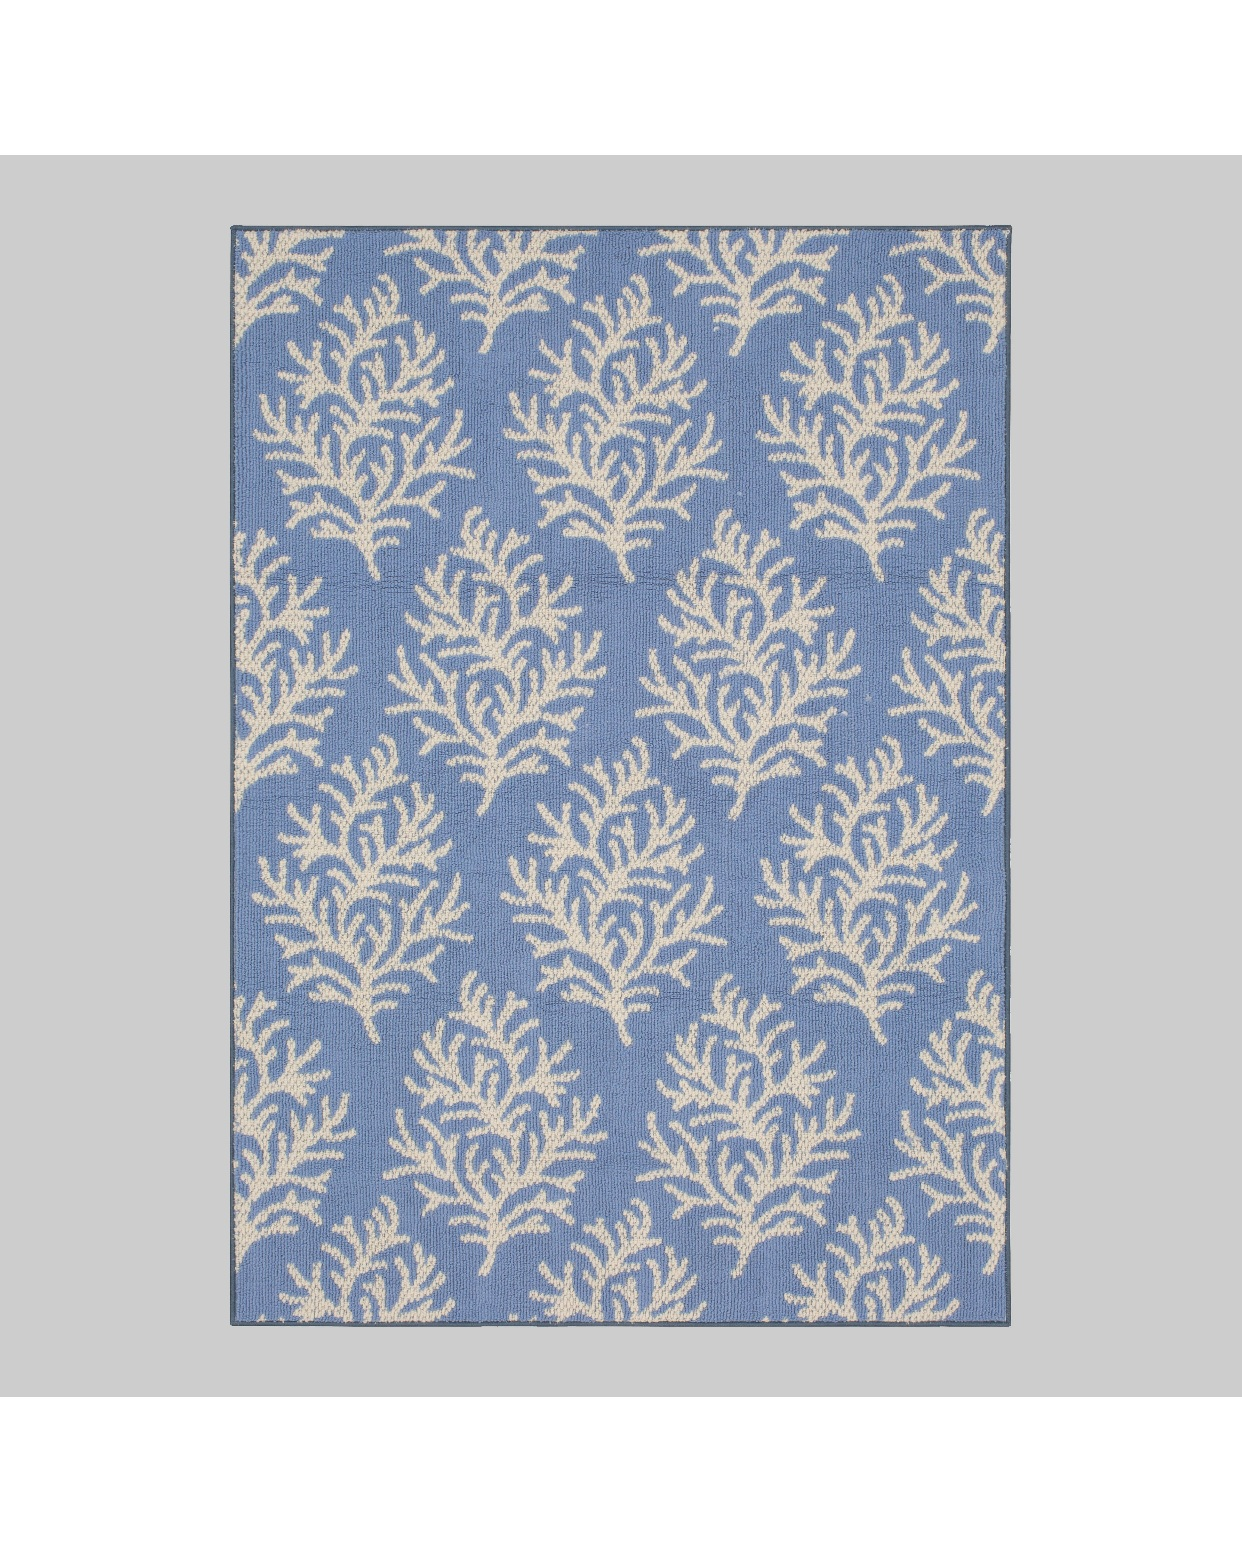 - We'll be getting our outside area ready for Spring and Summer here very soon and this rug is on my list of must haves for our deck. We had a Threshold outdoor rug ( A Target brand) last year and it held up to some crazy weather and direct sunlight. We'll be using it again this year because it's still in great shape! This blue coral one is so pretty though and I have the perfect spot!Find it here.